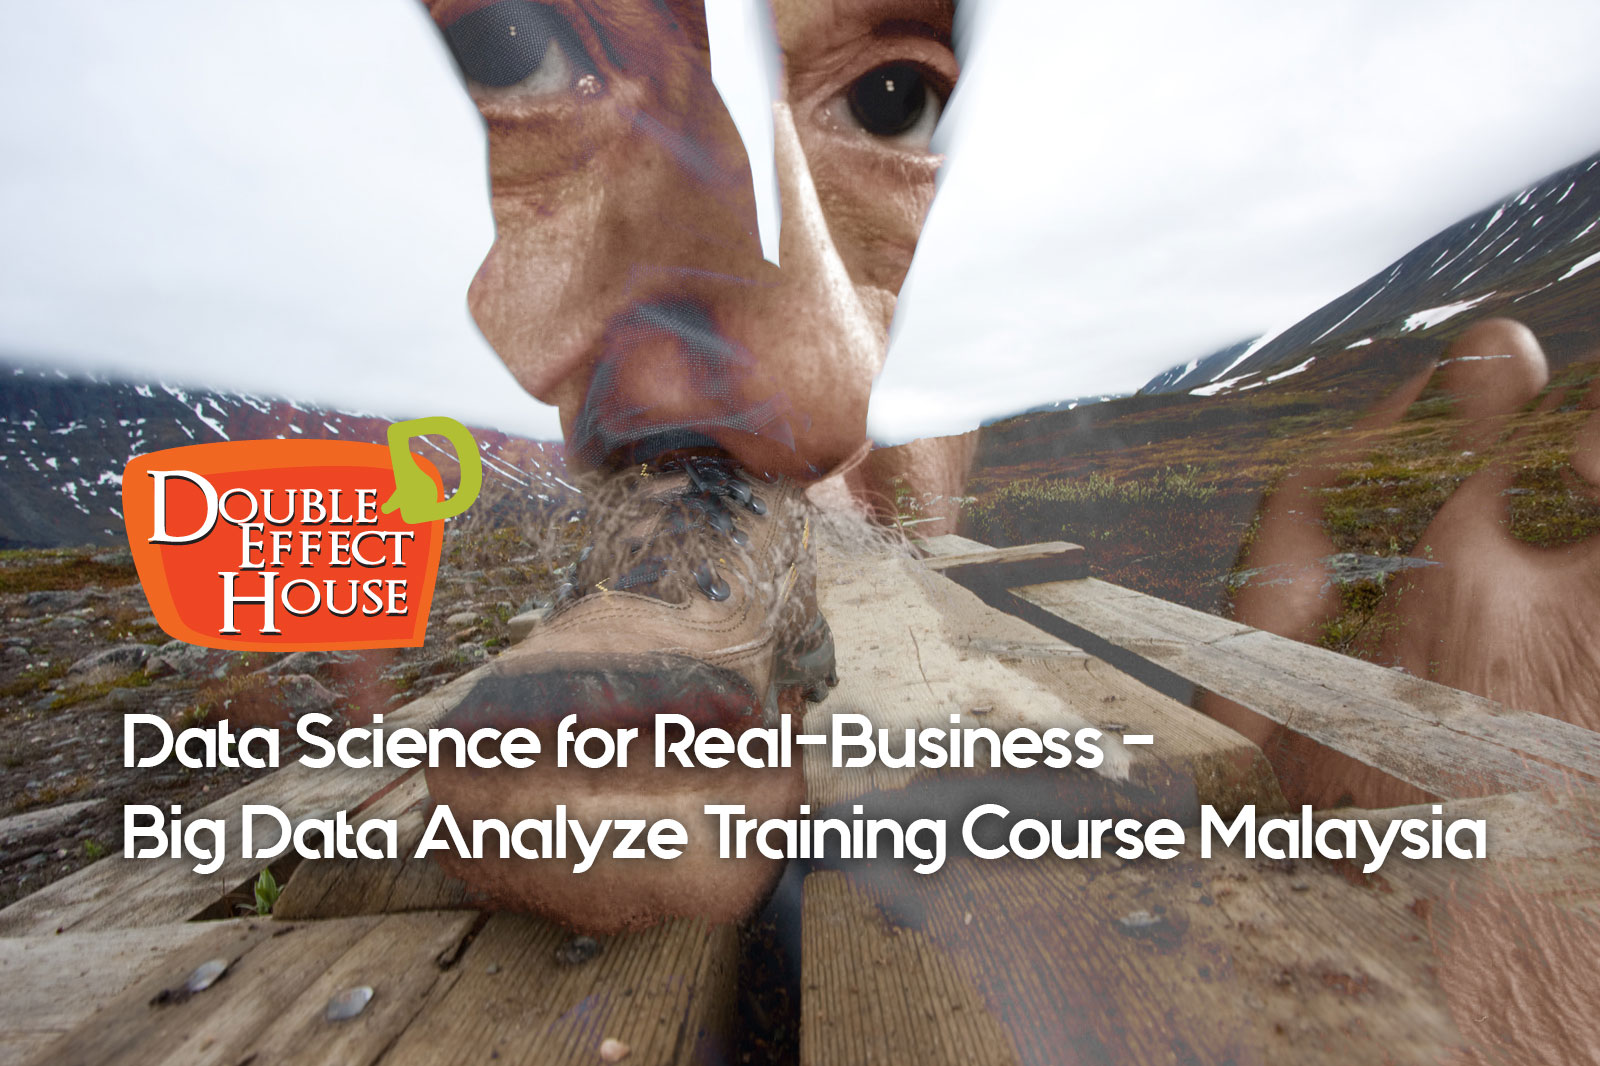 Data Science for Real-Business - Big Data Analyze Training Course Malaysia